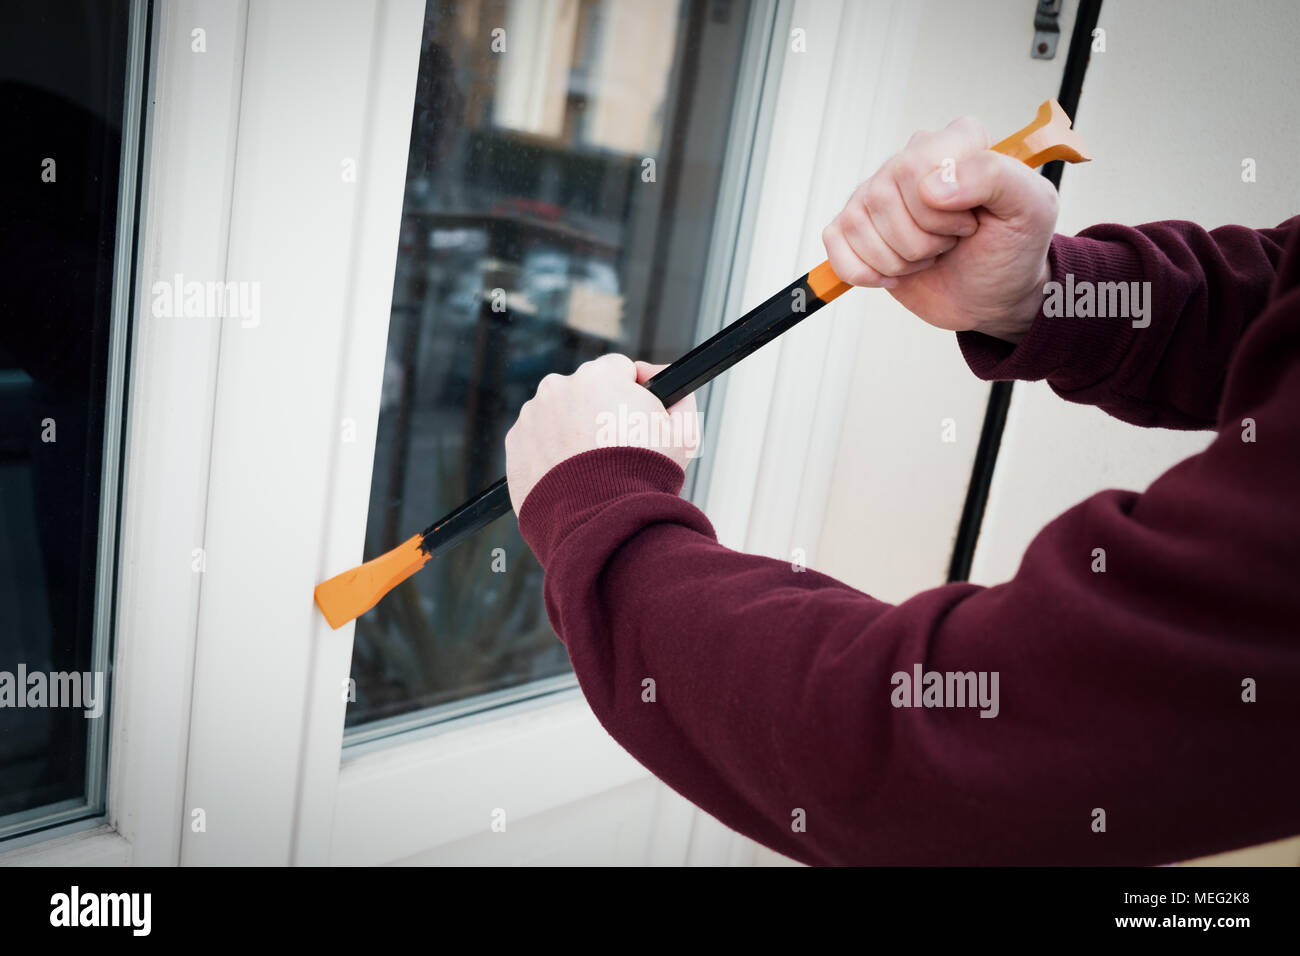 Burglar forcing window to rob in the house Stock Photo